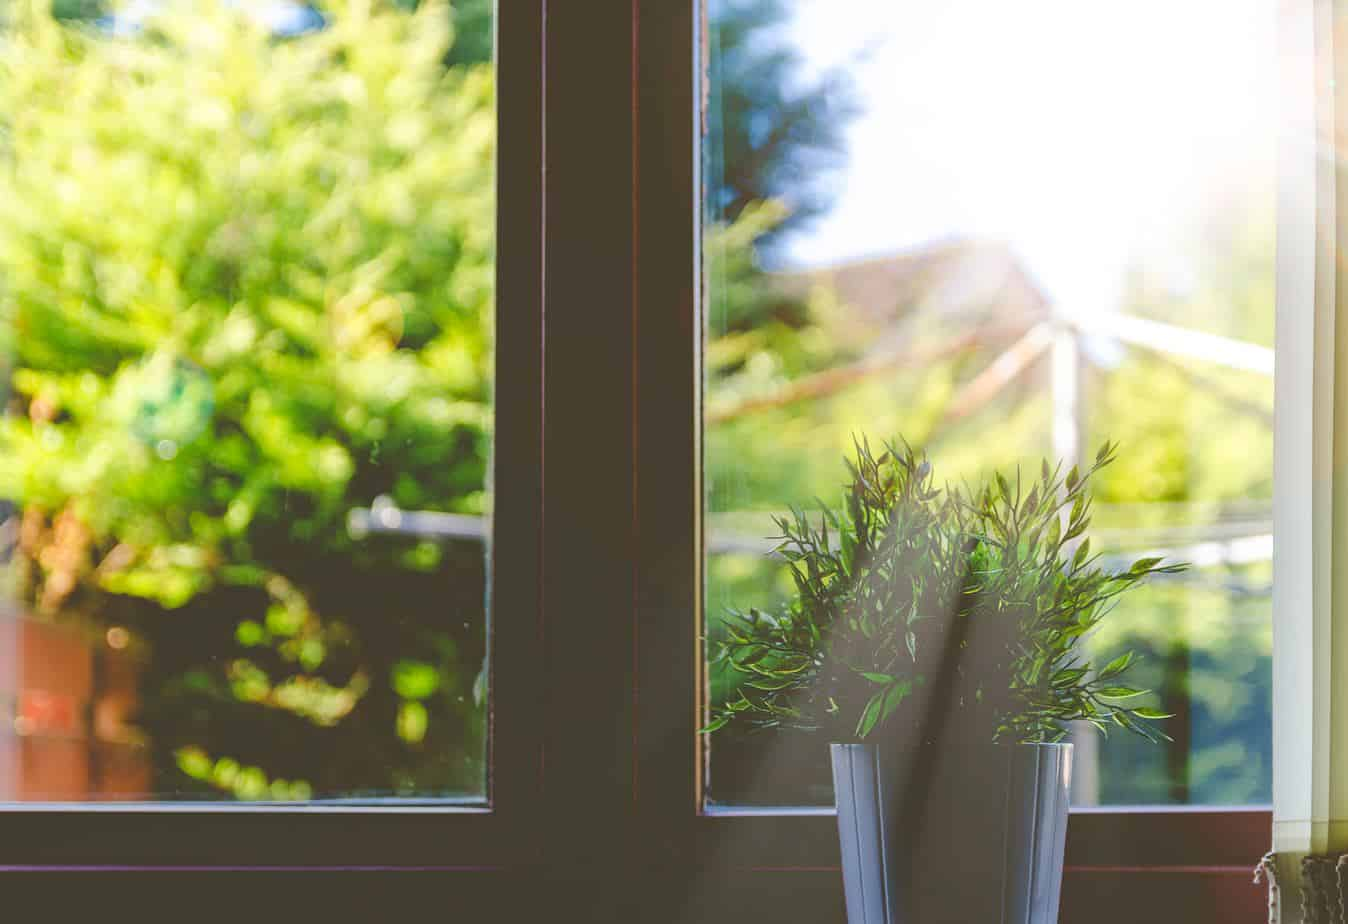 Making Your Home Greener And Cleaner